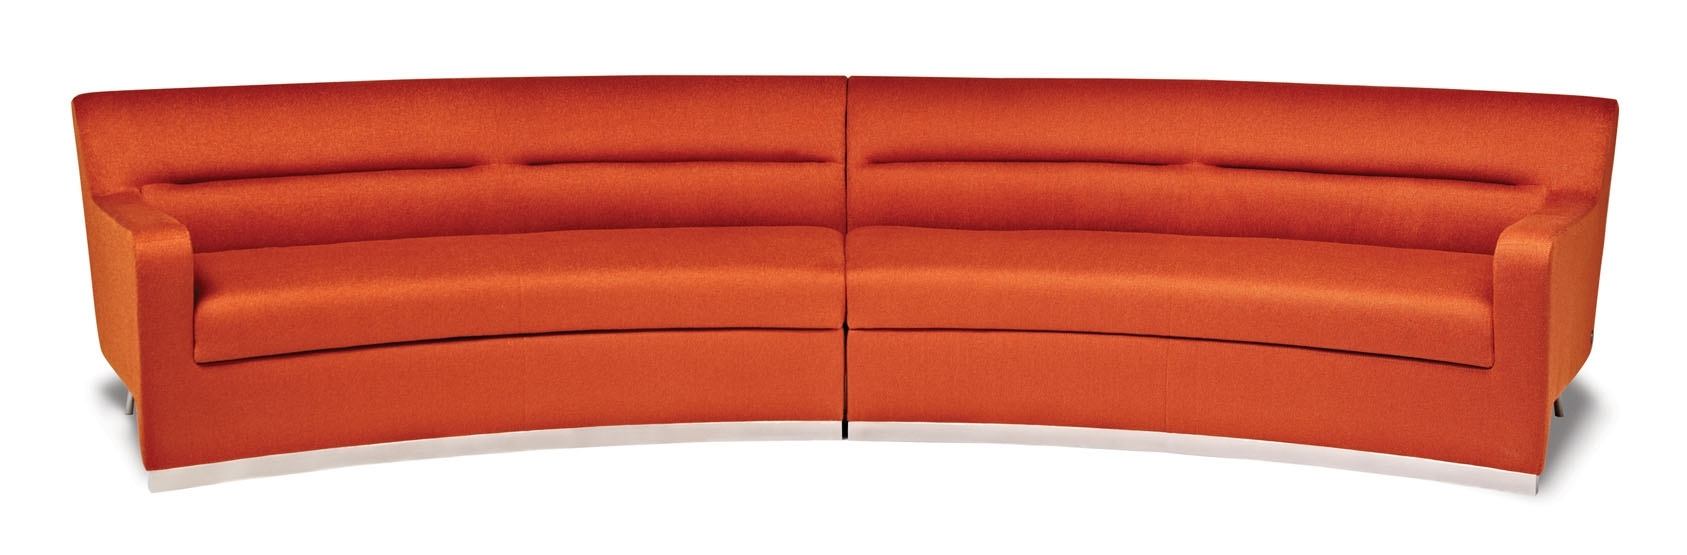 American Leather Niagara Sectional Sofa | Modern Furniture pertaining to Niagara Sectional Sofas